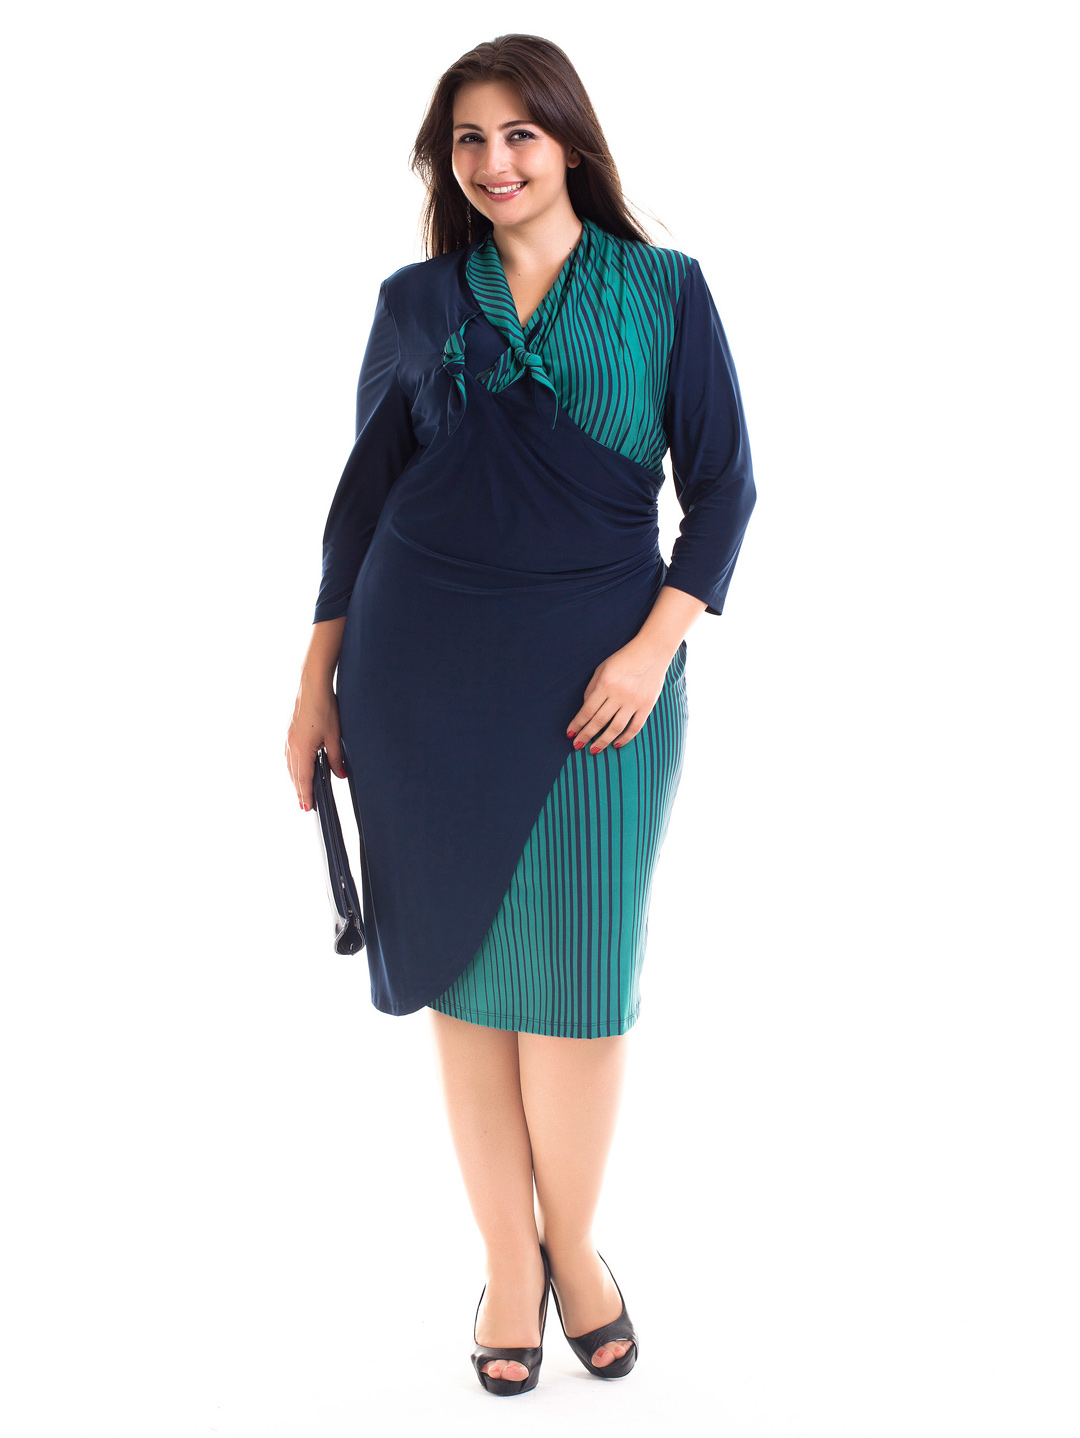 jcpenney dresses plus size jcpenney wedding dresses Jcpenney dresses plus size Plus Size Party Dresses Jcpenney